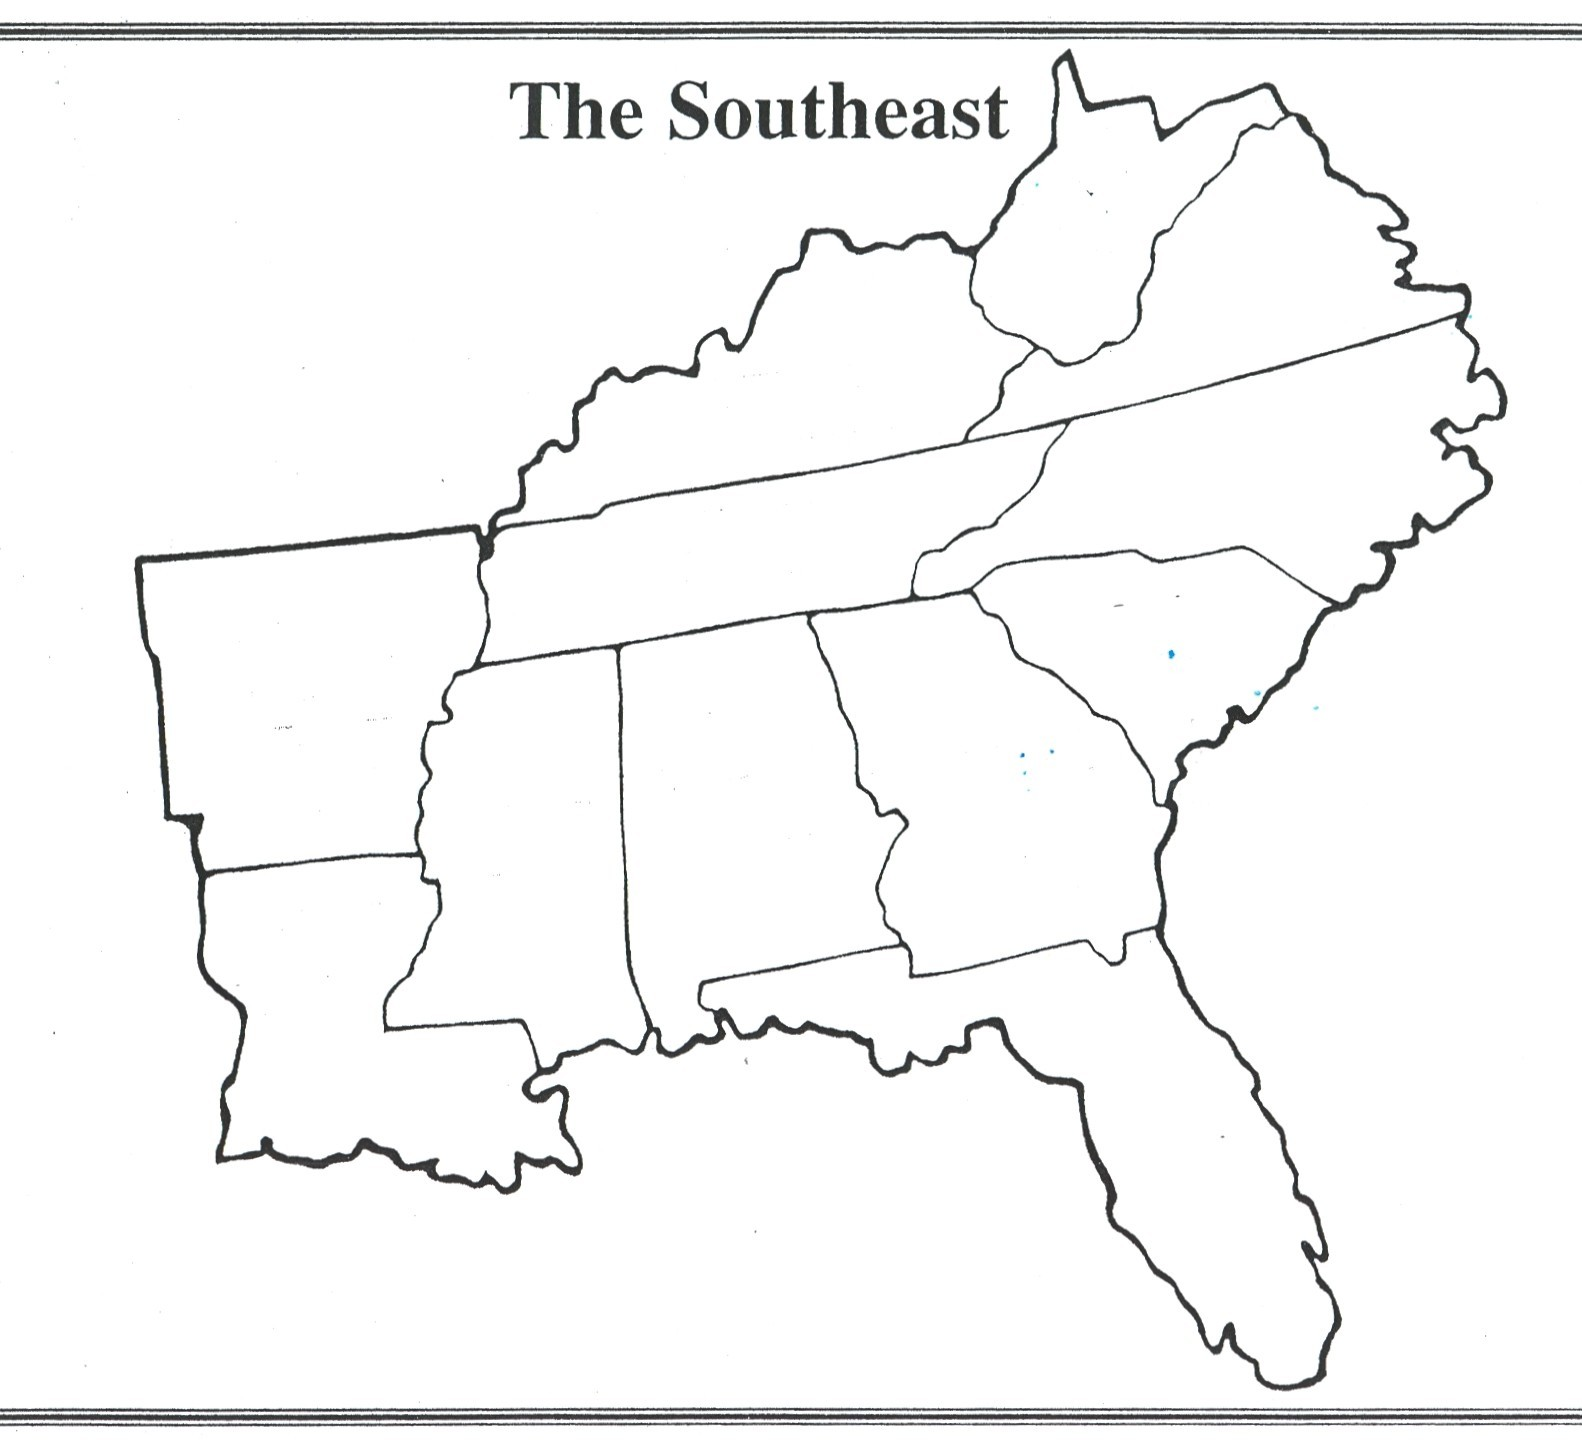 Printable Map Of The Southeast Region Of The United States